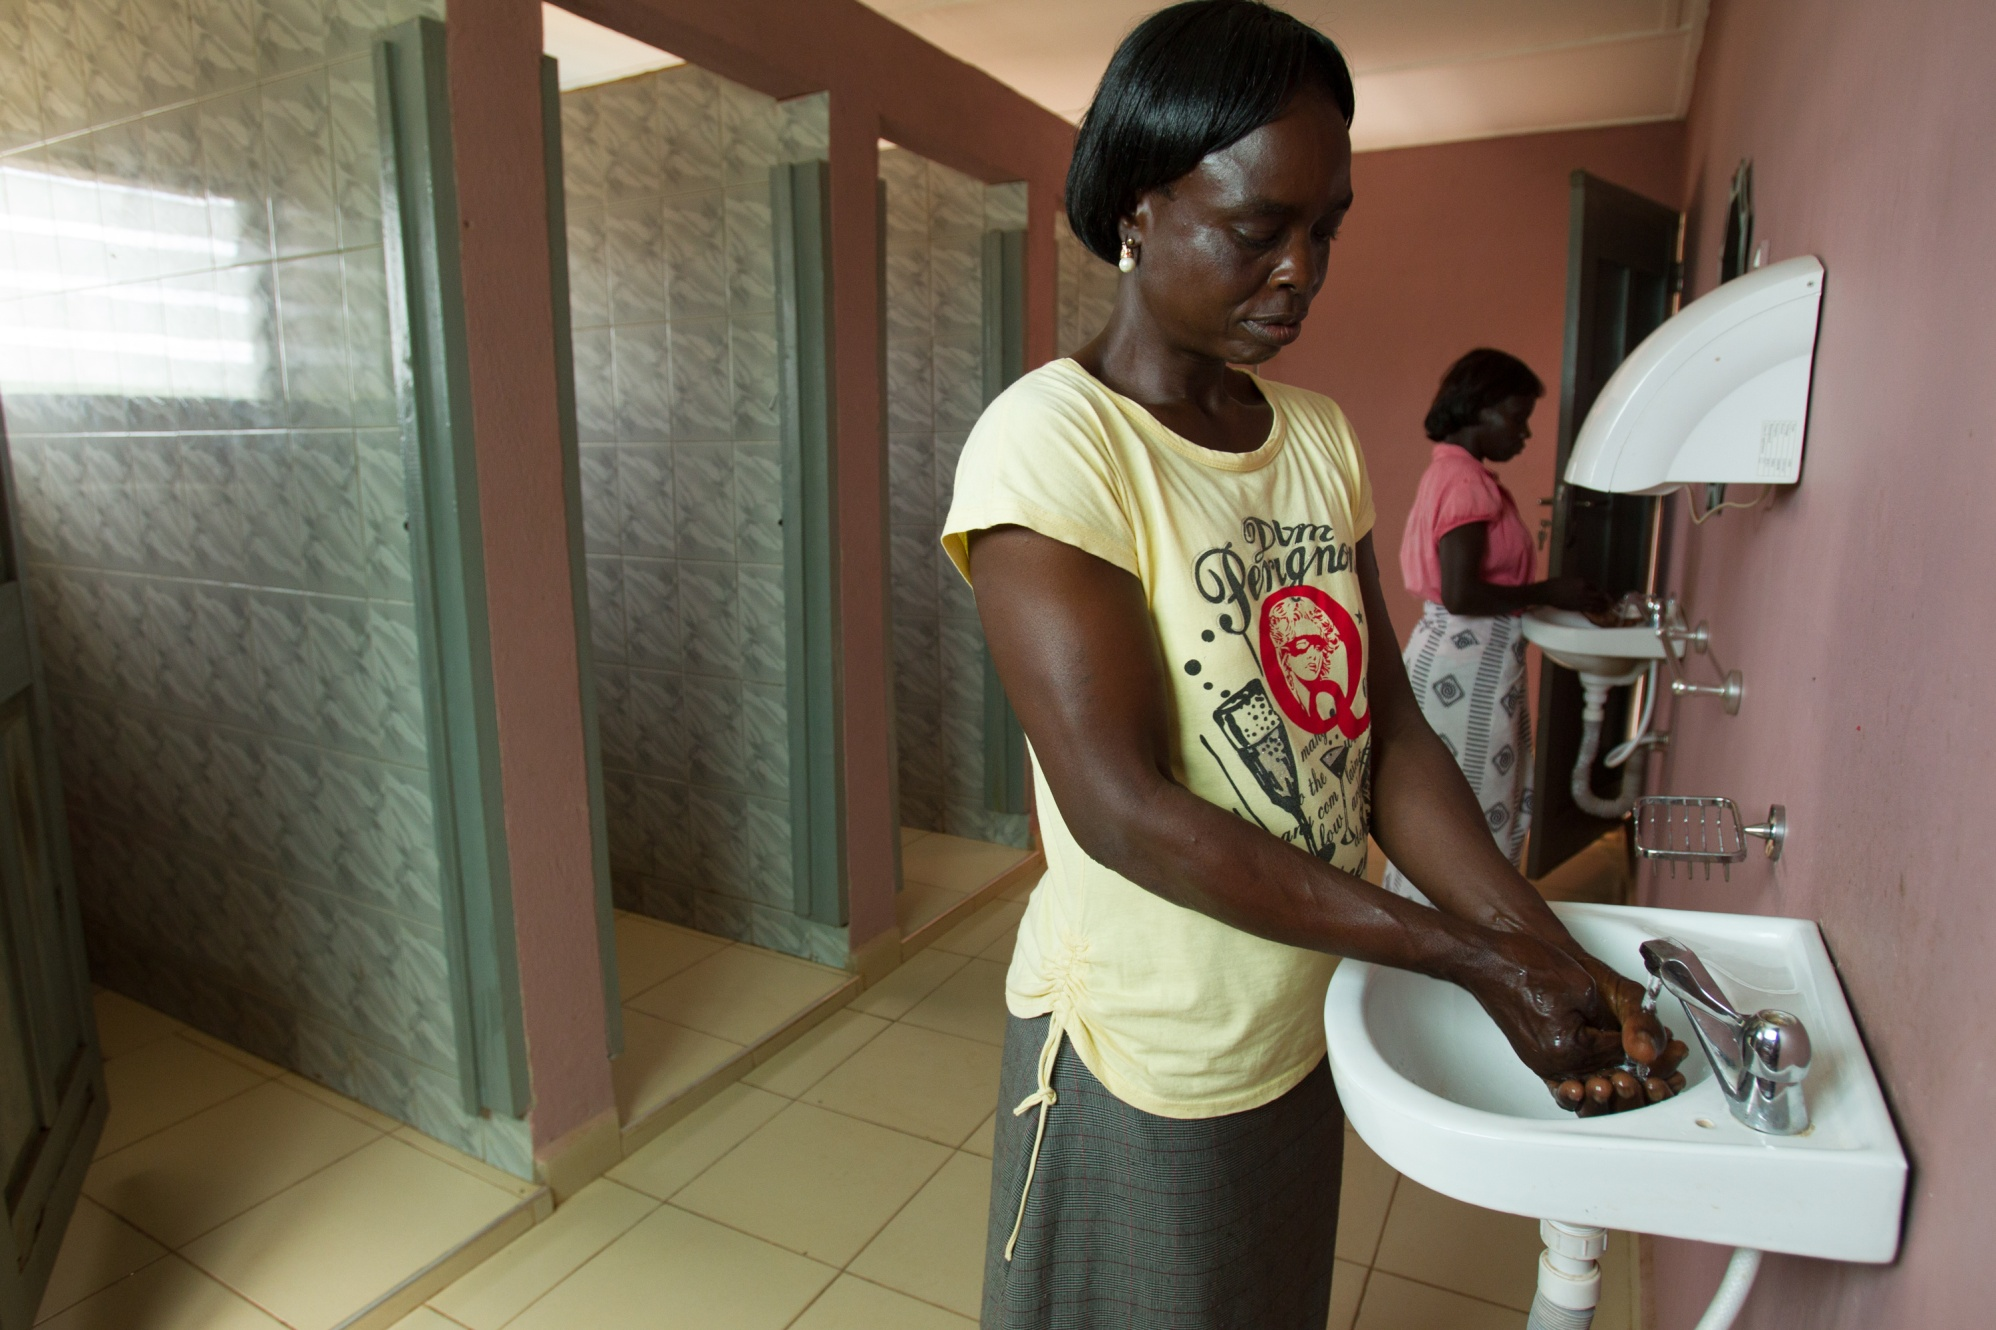 Women wash their hands in the Rotary-funded toilets at the local market in Sunyani, Ghana. The toilets were built to improve sanitation and prevent the spread of bacterial diseases.